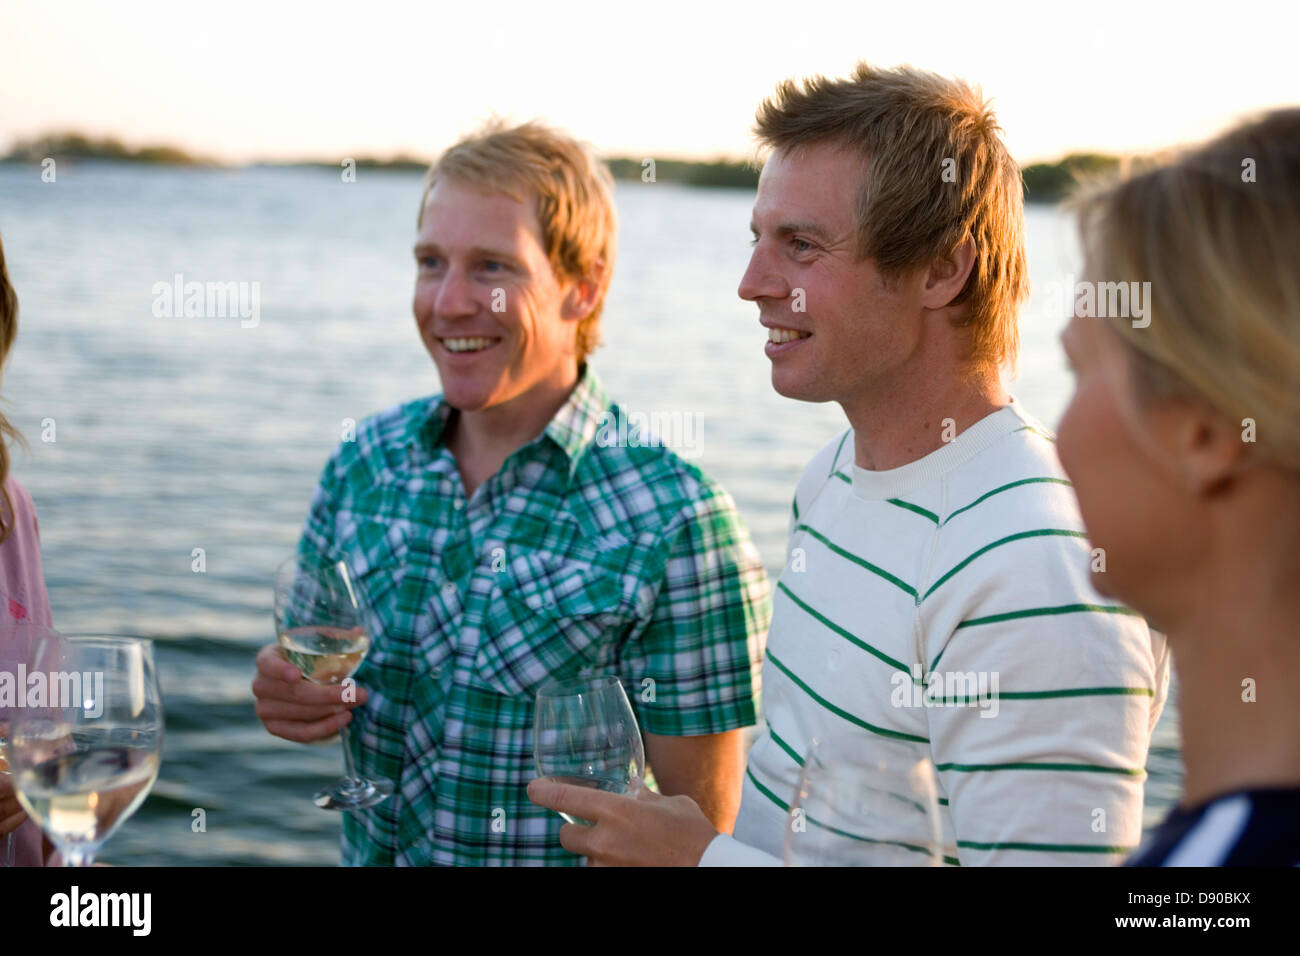 Three persons laughing and drinking, Fejan, Stockholm archipelago, Sweden. Stock Photo